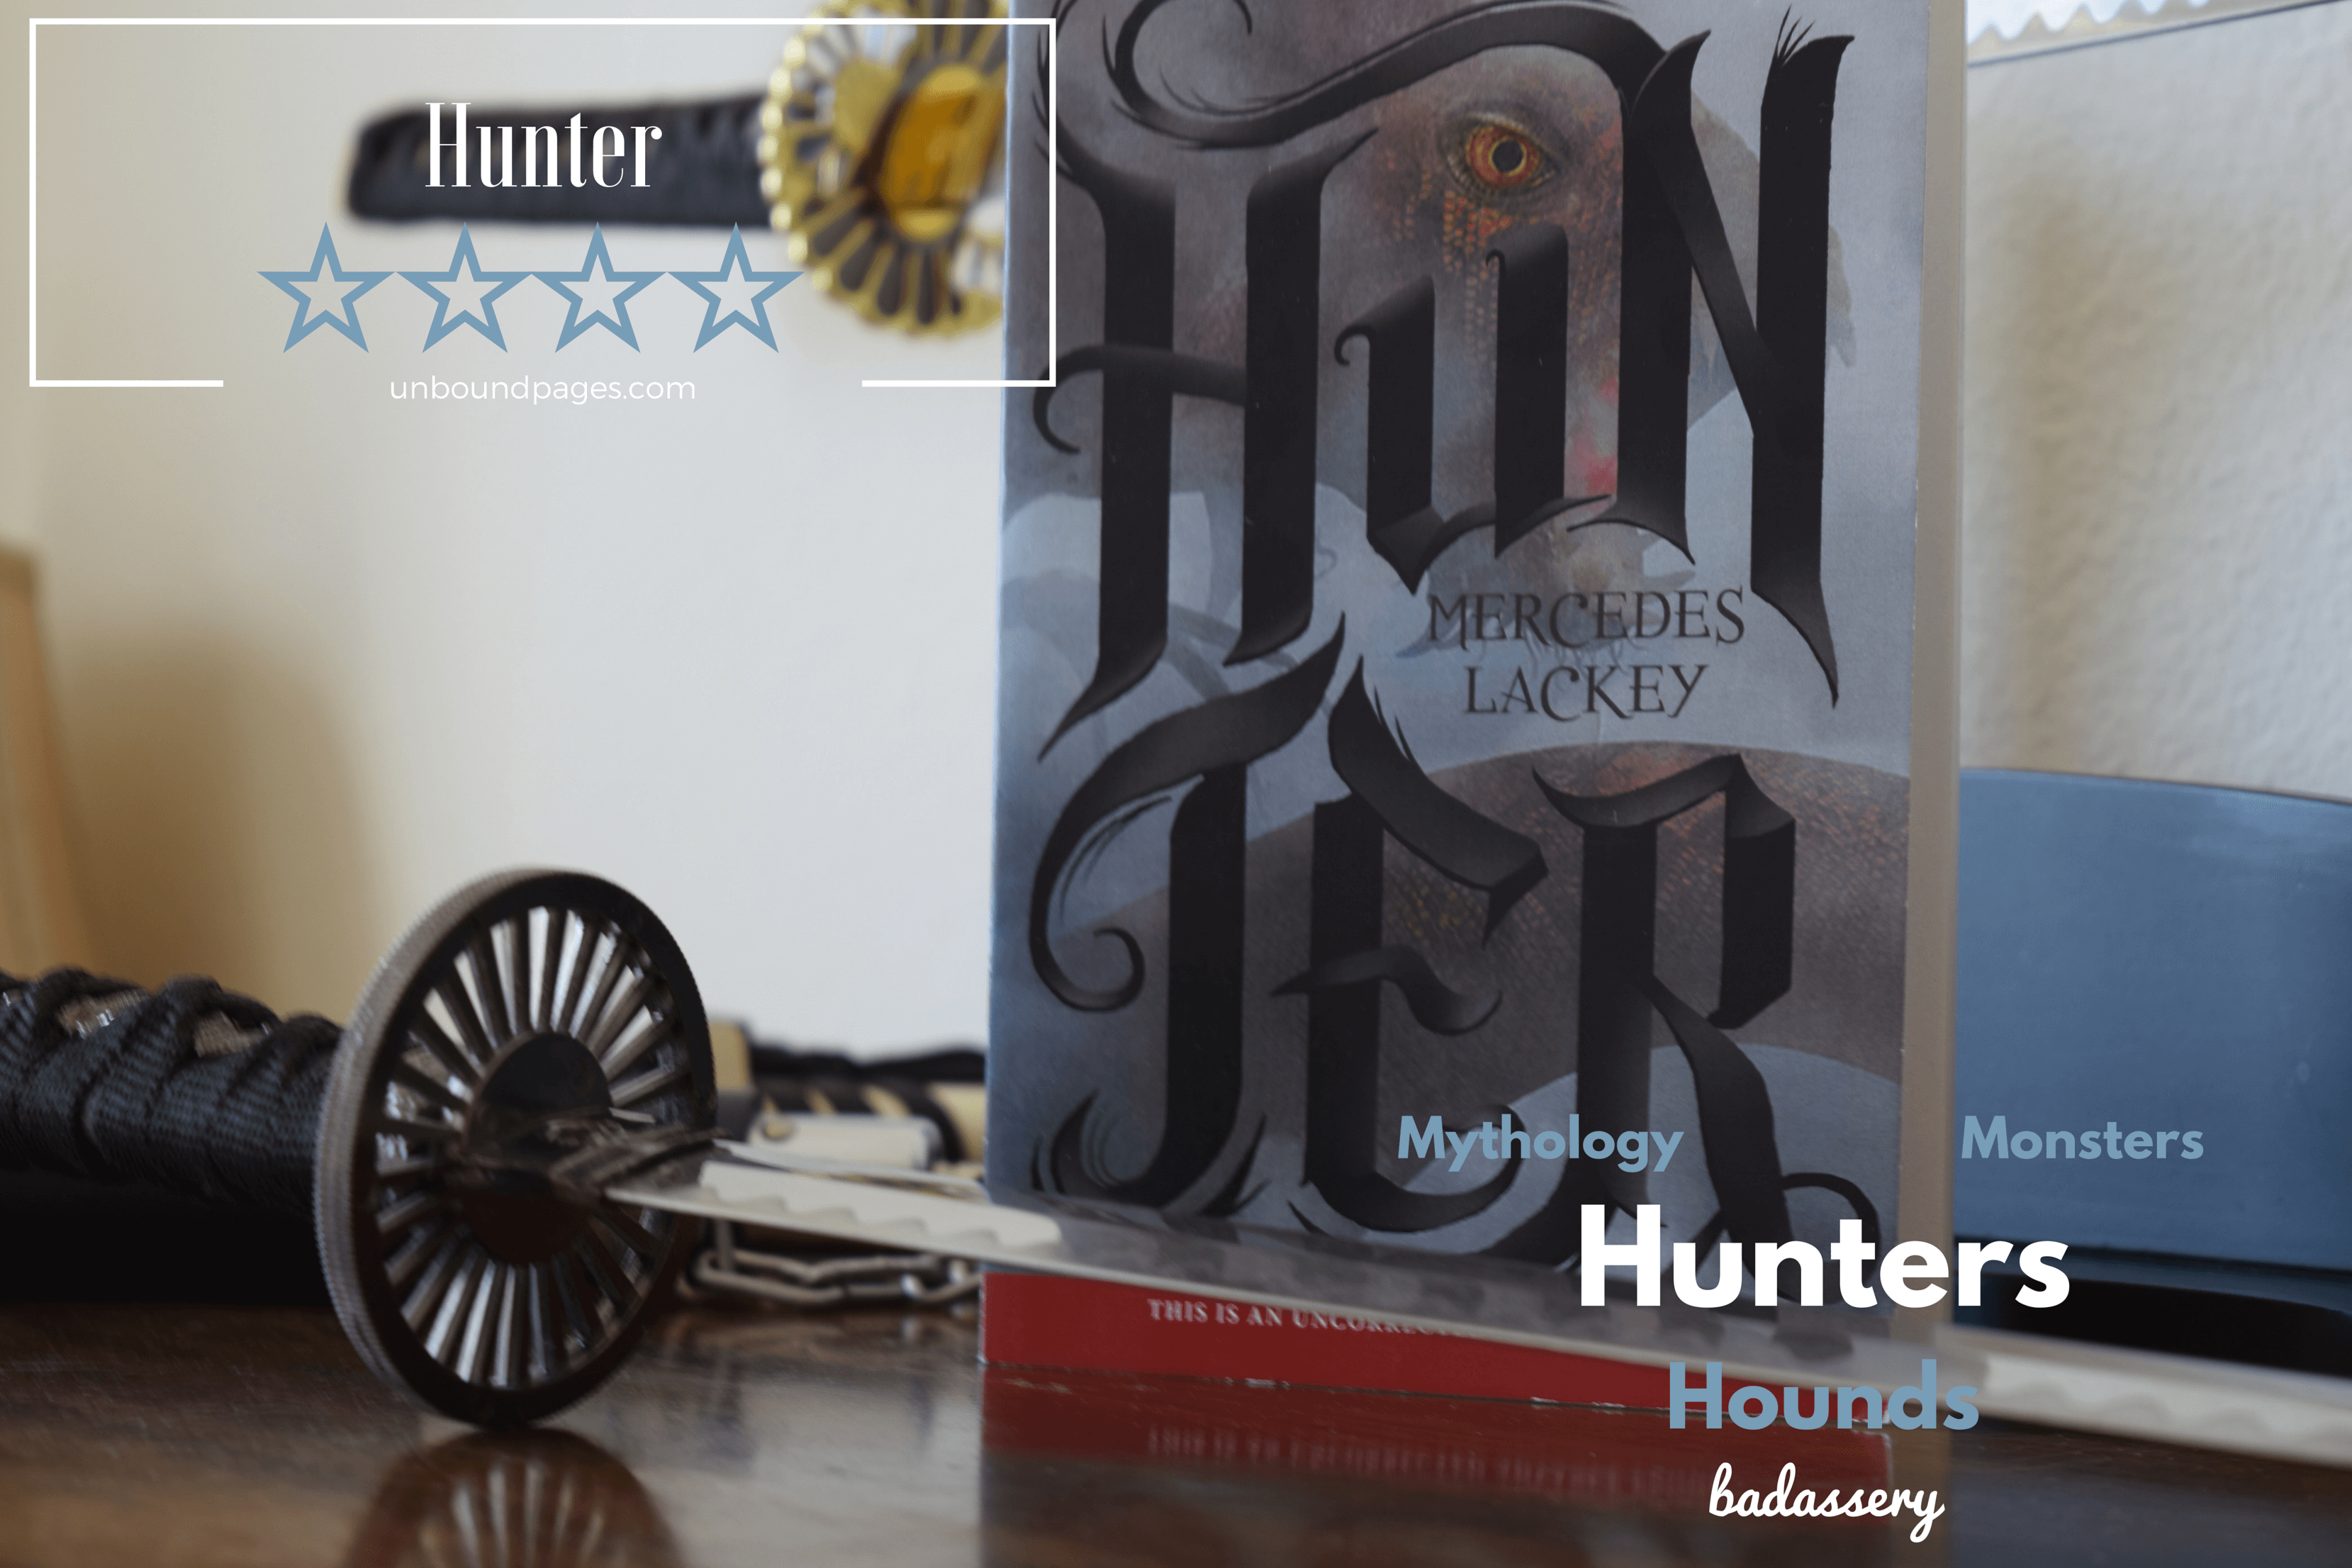 Hunter has every single fantastical creature you can think of. The pacing was a bit slow, but the ending saved it - unboundpages.com